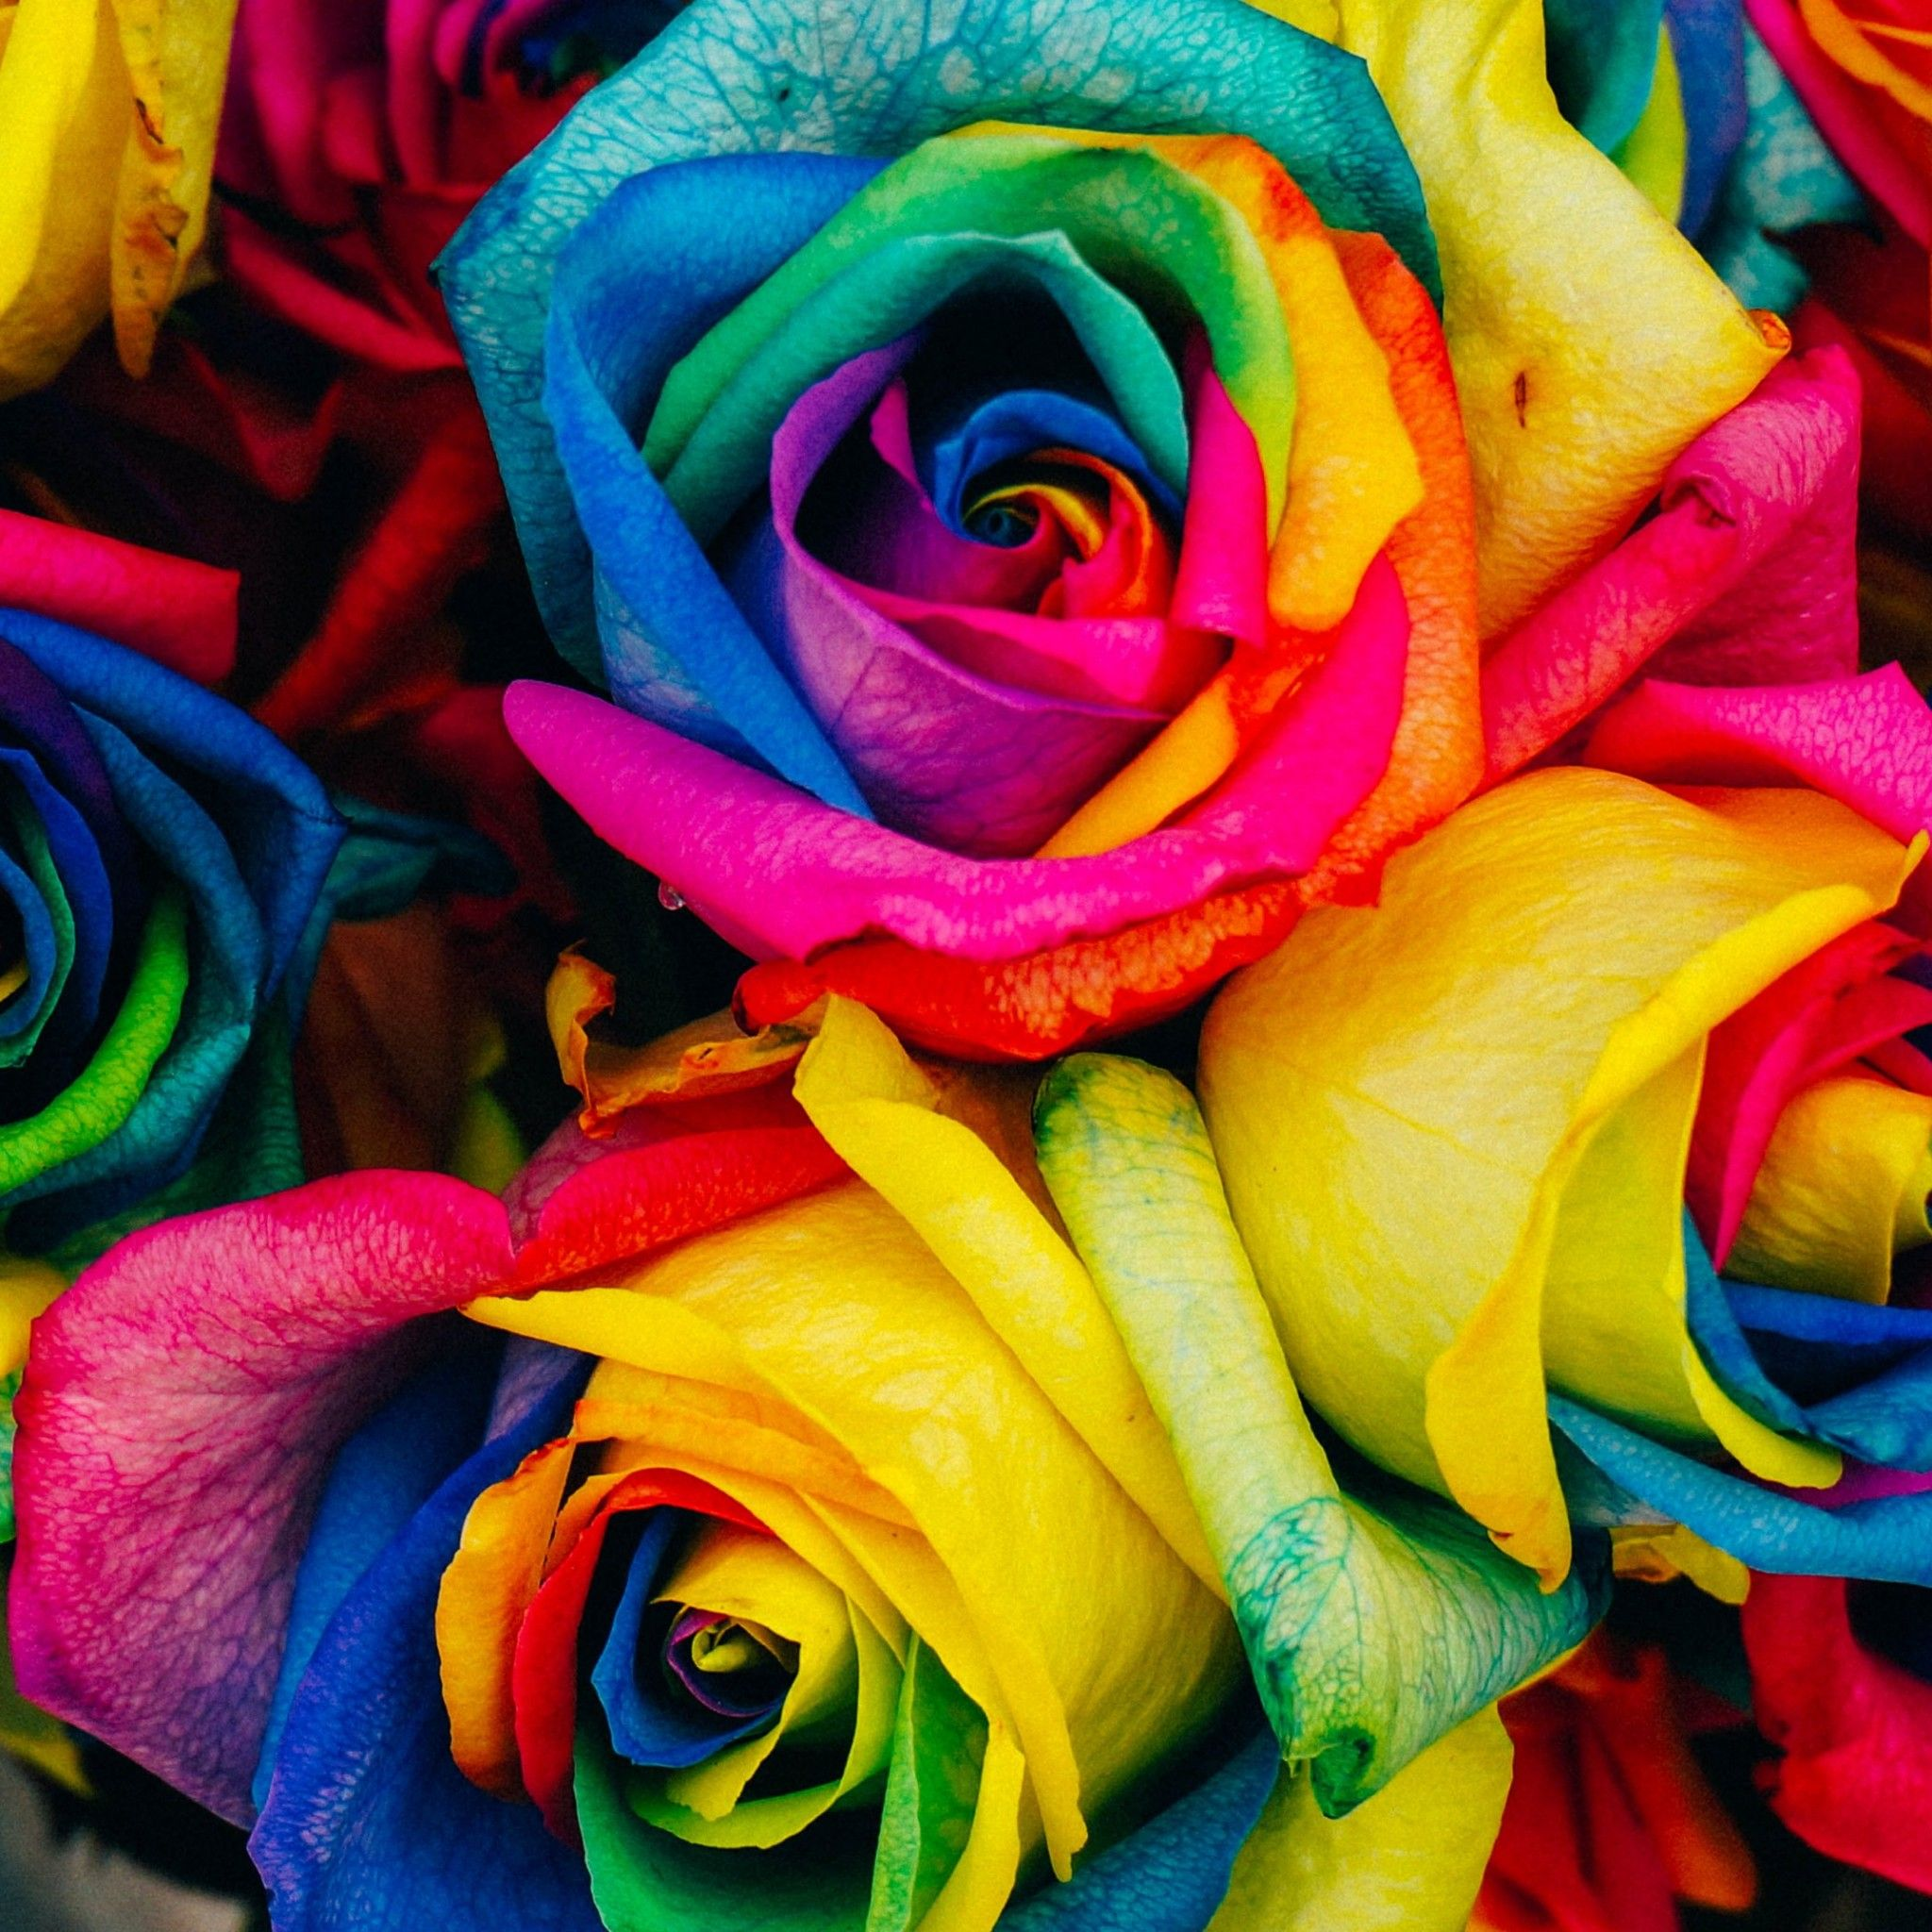 Rainbow Roses Tap To See More Color Full Wallpapers Mobile9 Rainbow Roses Colorful Roses Love Rose Flower